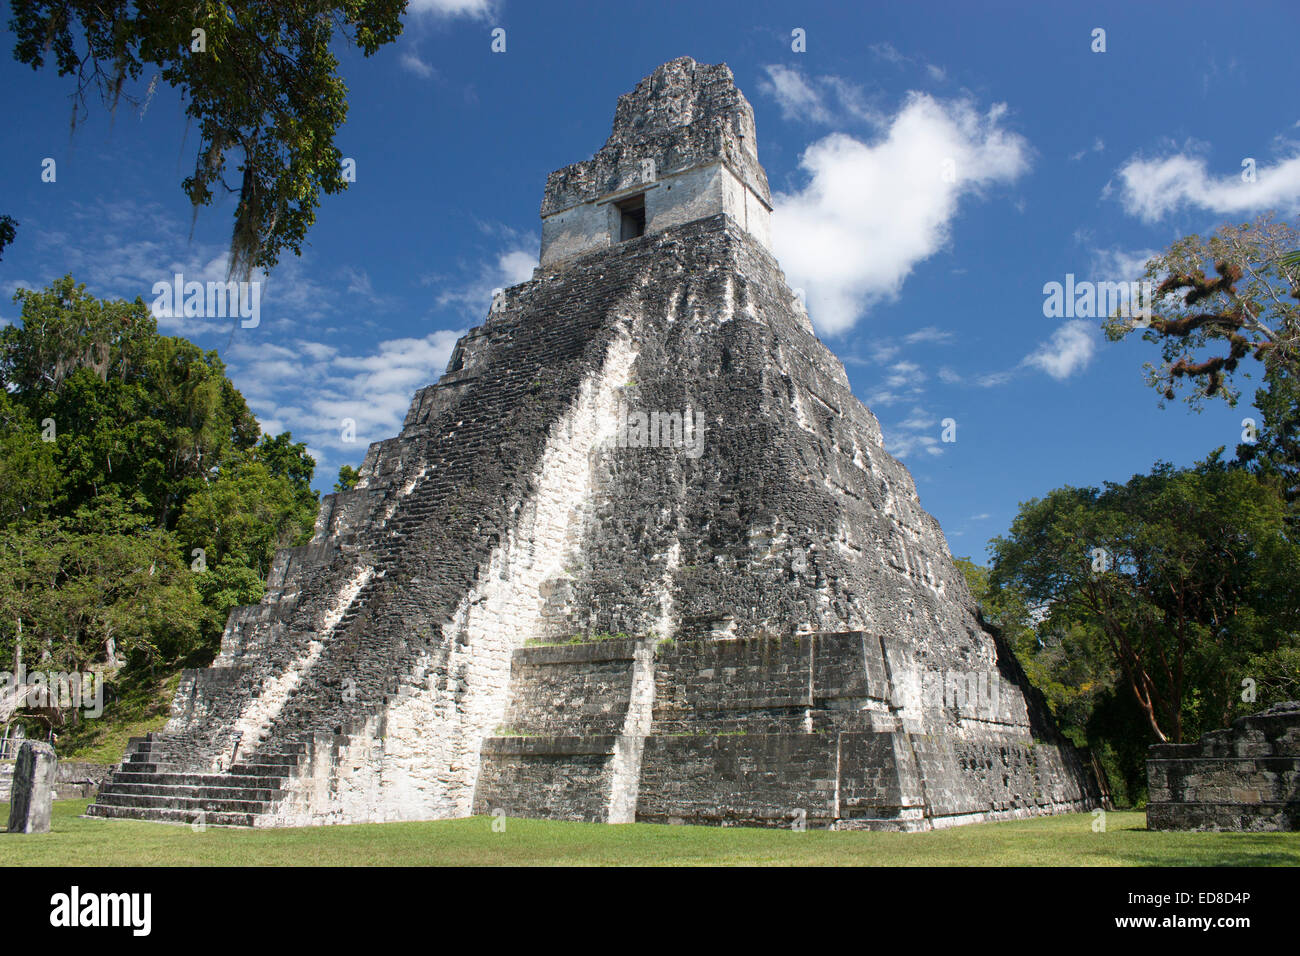 Guatemala, Peten Province, Tikal National Park, Temple I - Stock Image